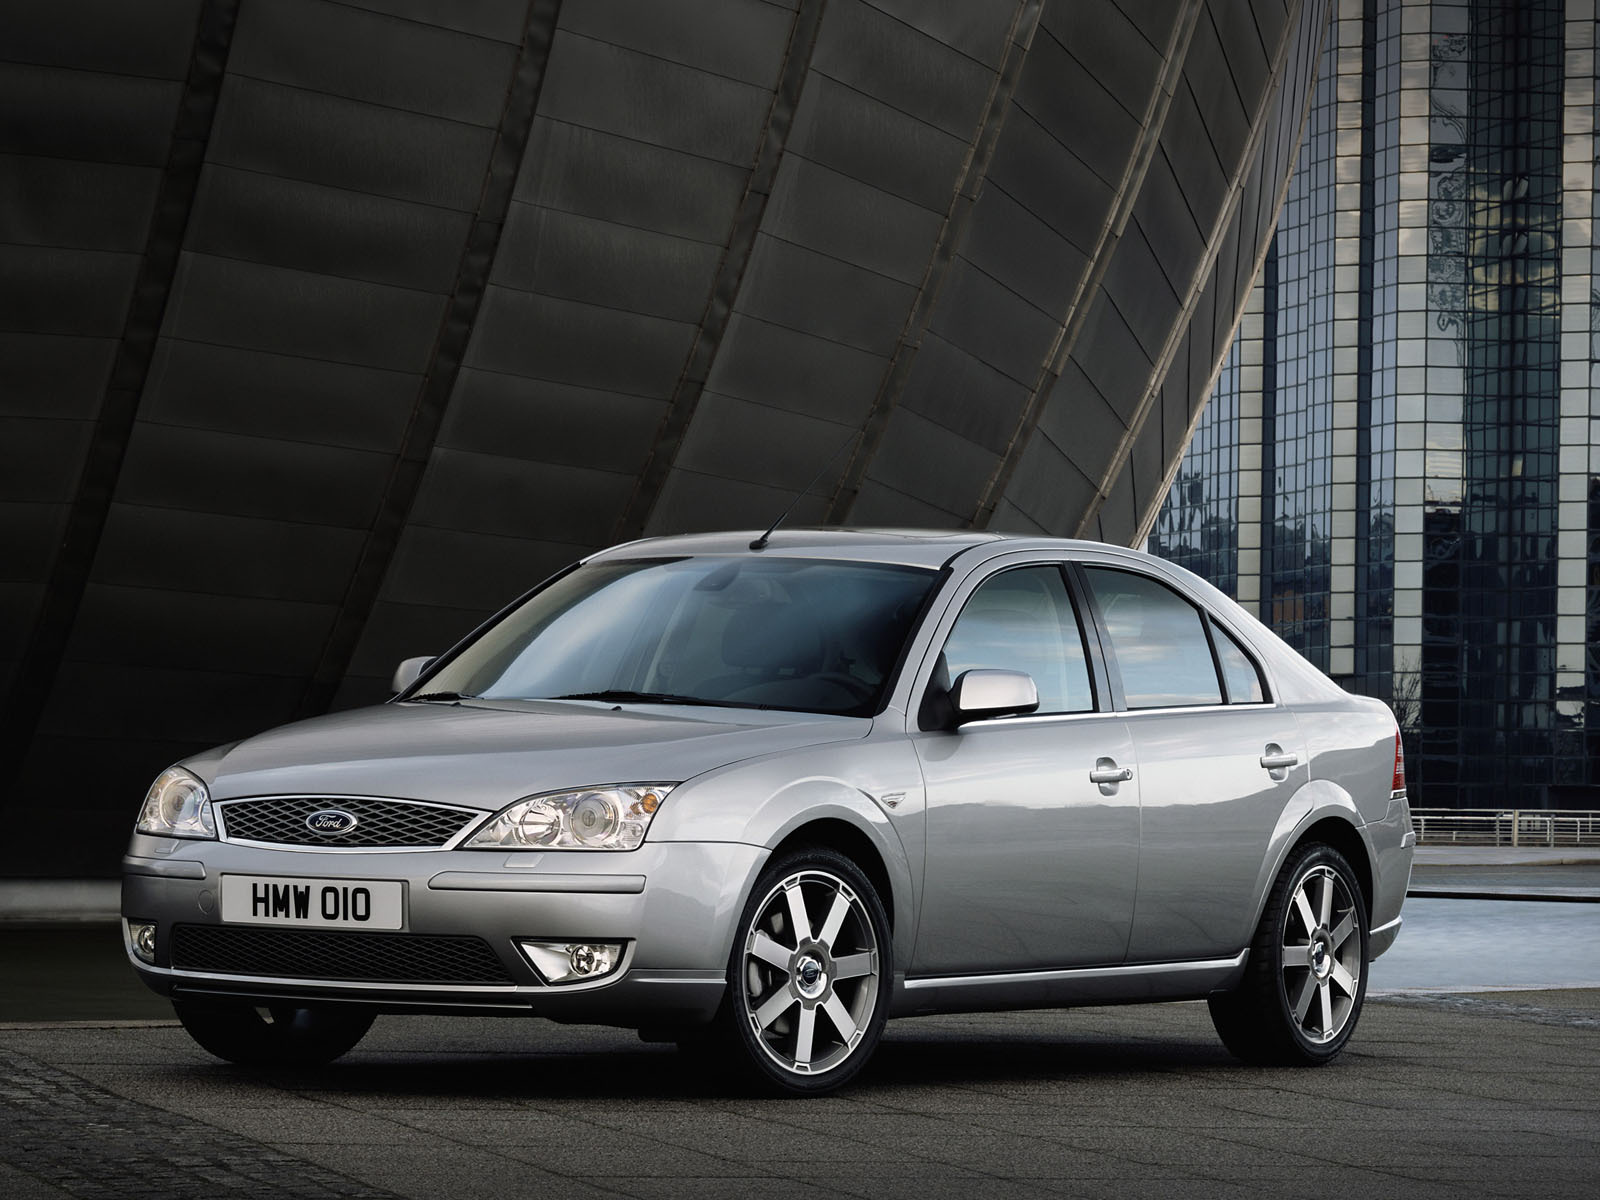 Ford Mondeo 2.5 2005 photo - 3